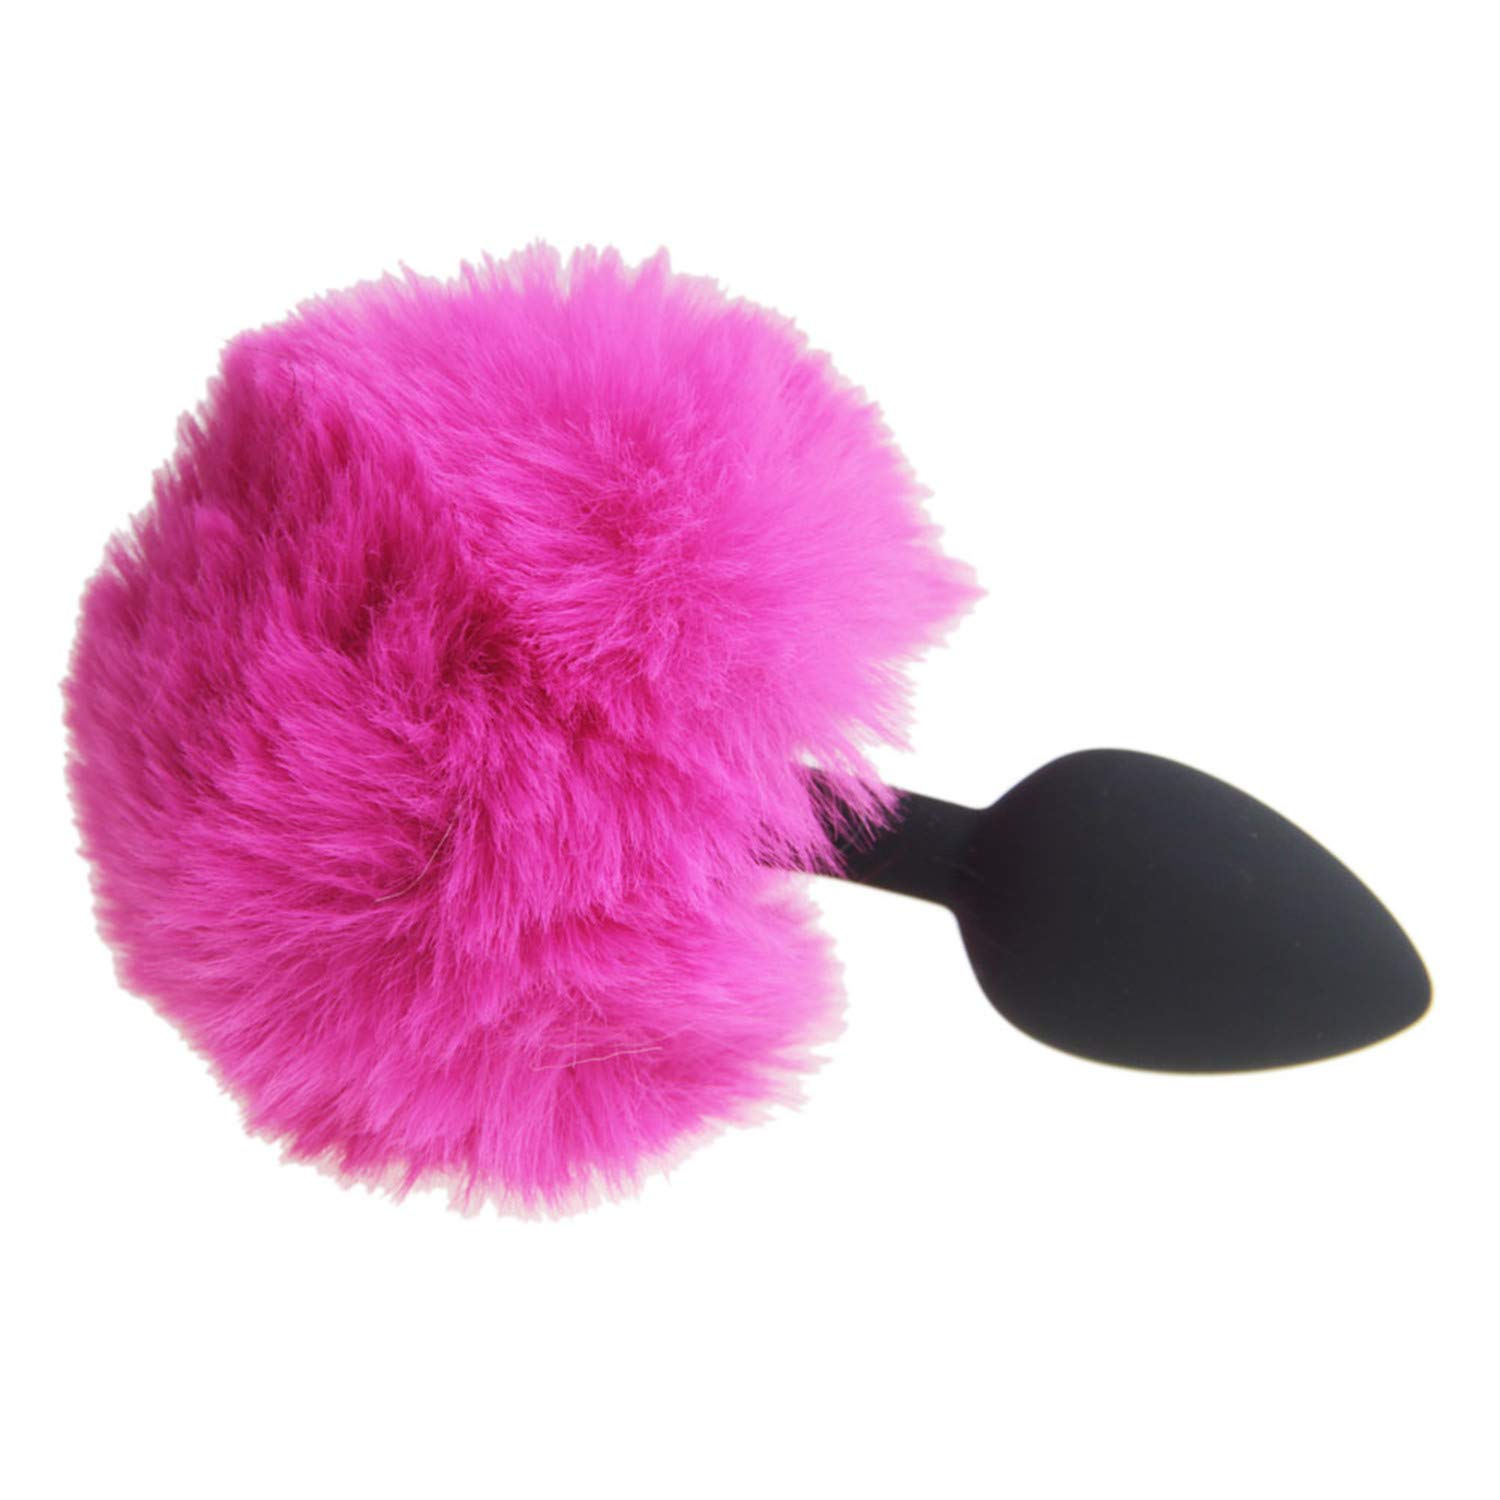 Amazon.com : Anal Plug Sex Toy Rabbit-TailS Butt Anal-Plug Sex Anal Toys  Products Buttplugs G SPOT Stimulating Cattails Cosplay Pink : Beauty